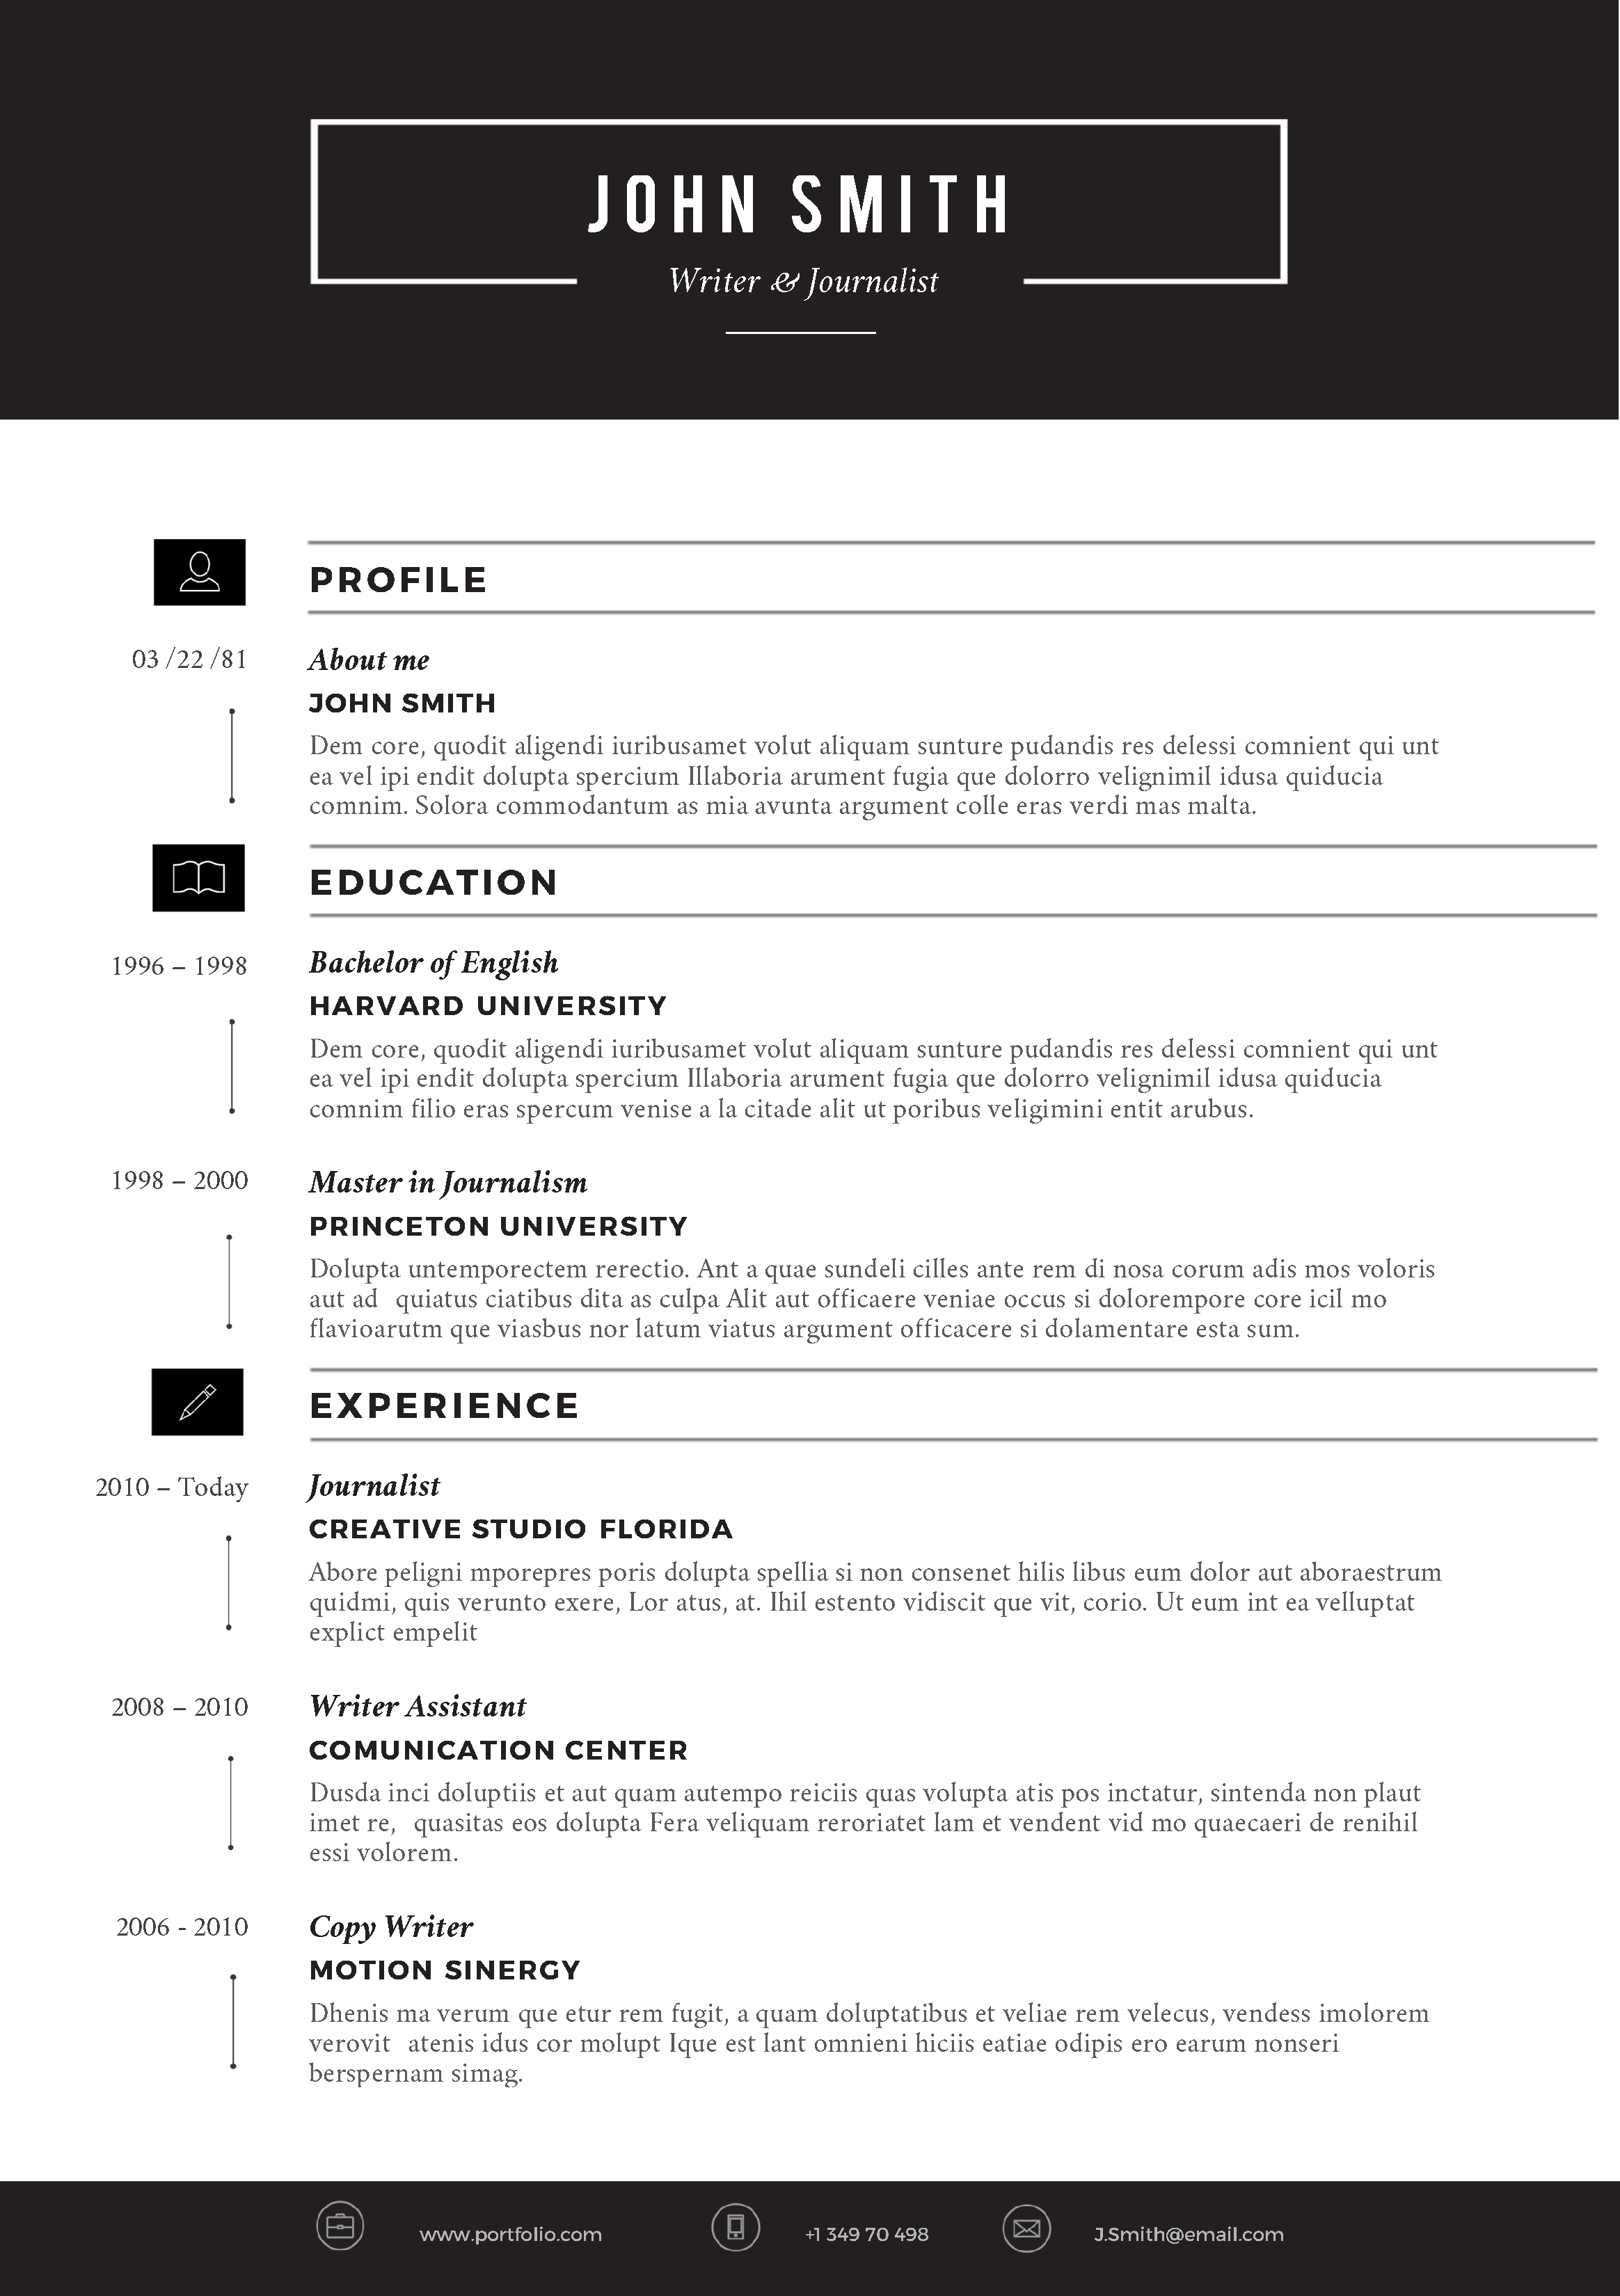 functional executive resume template word resume templates functional executive resume template word trendy top 10 creative resume templates for word office cvfolio best